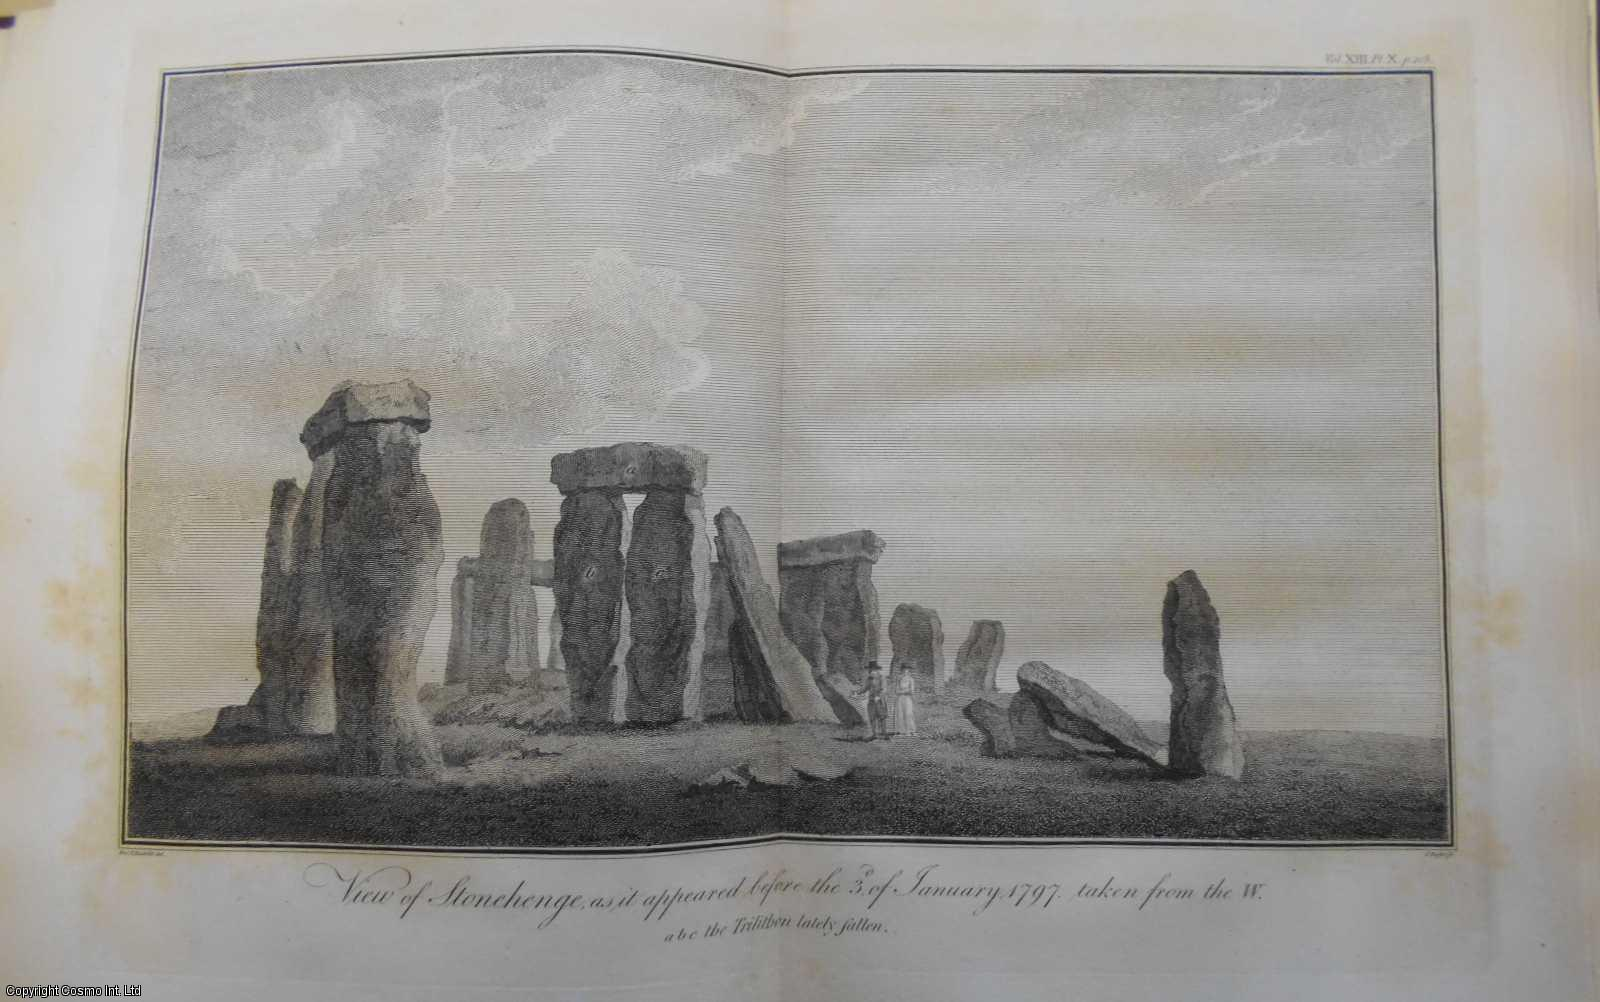 Account of the Fall of some of the stones of Stonehenge, in a Letter from William George Maton, M.B.F.A.S. to Aylmer Bourke Lambert, Efq. F.R.S and F.A.S., ---.